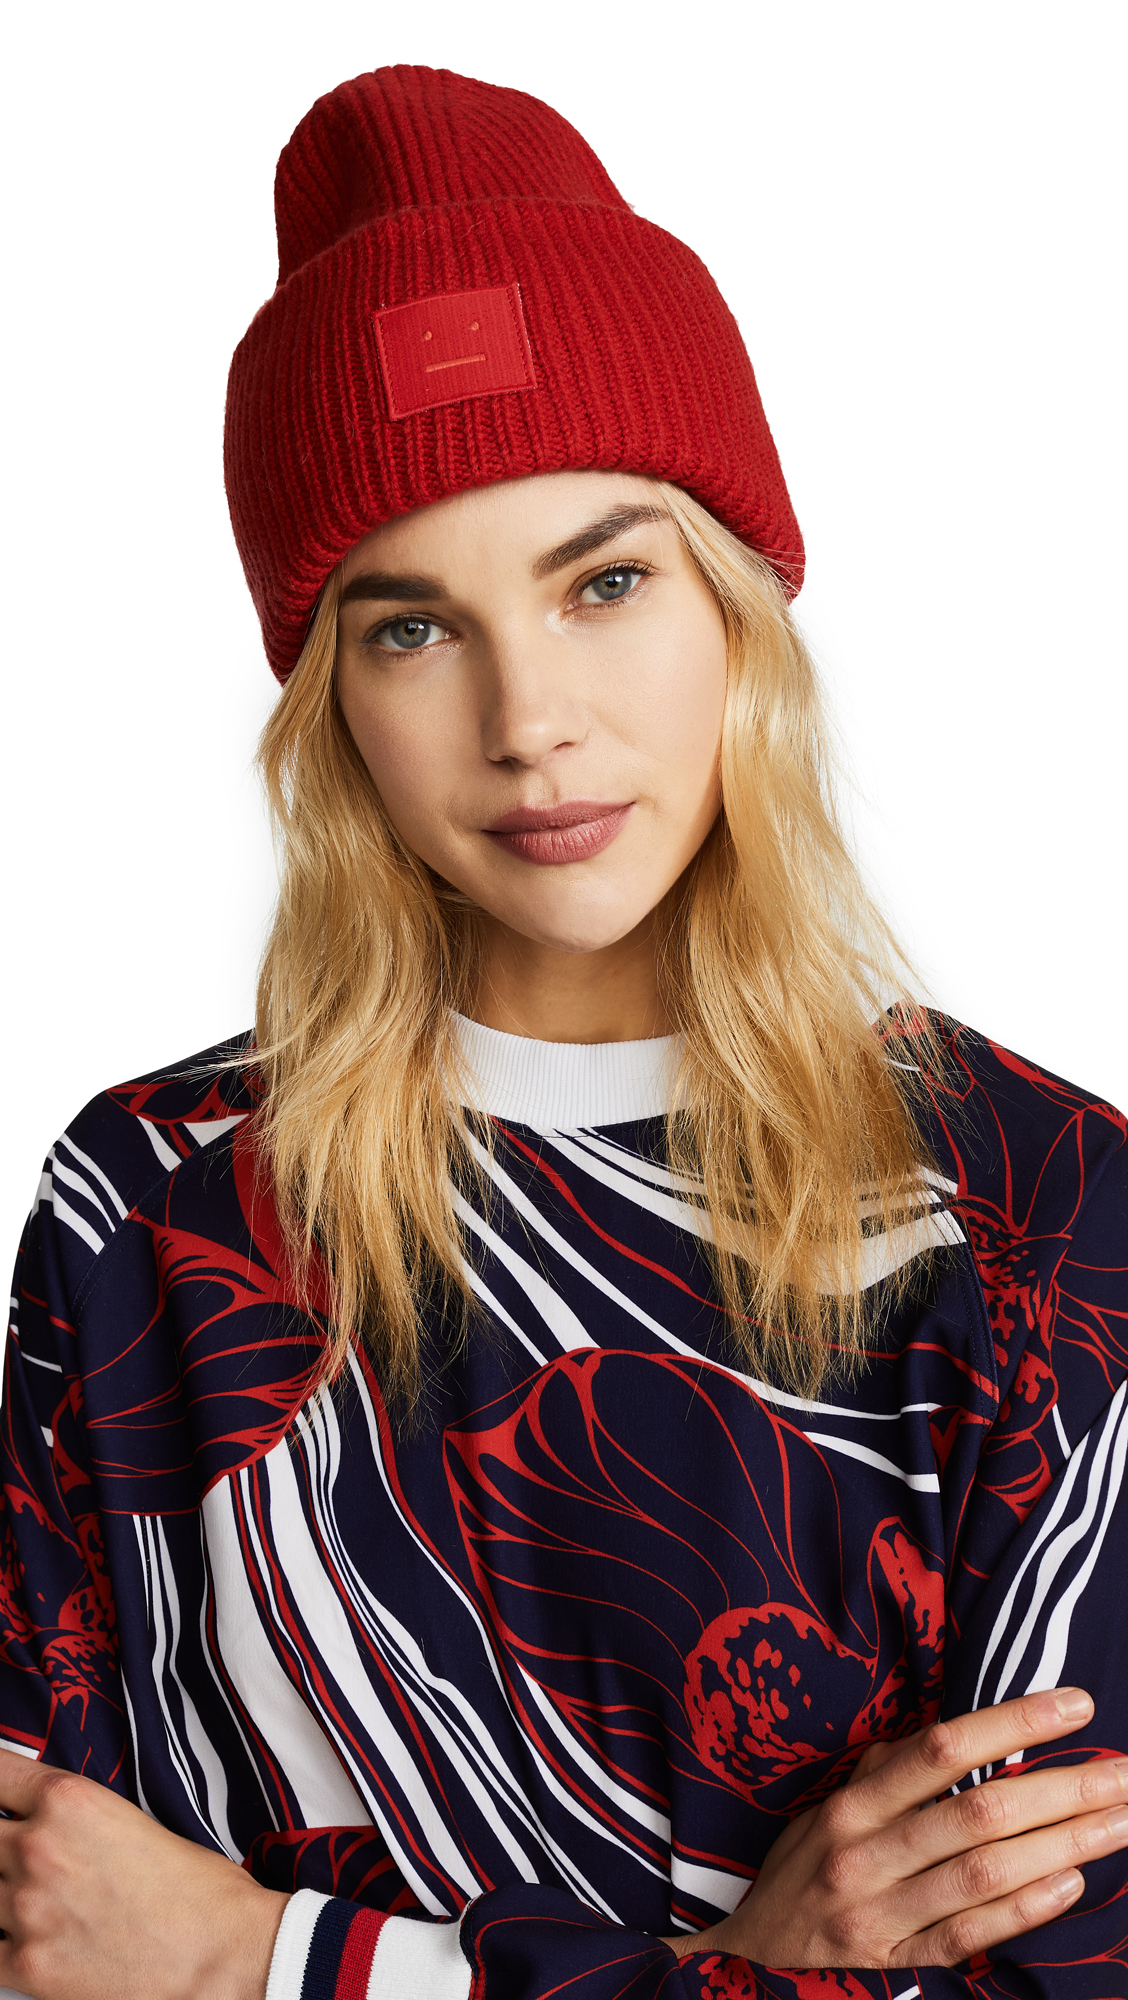 Acne Studios Pansy S Face Hat - Tomato Red